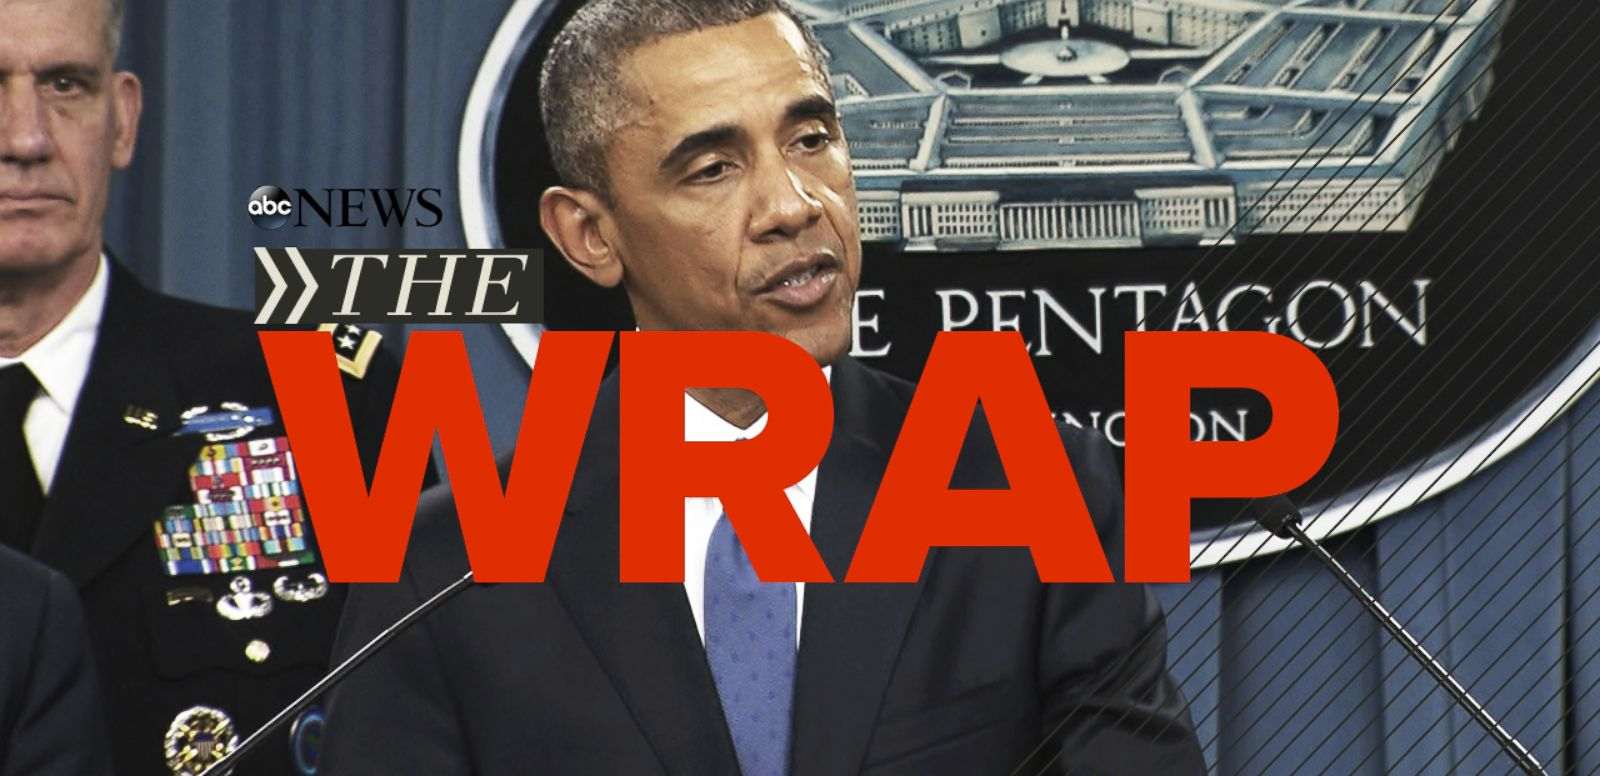 VIDEO: Walter Reed Medical Center On Lockdown, President Obama Remarks On ISIL, Confession To Murder In San Francisco